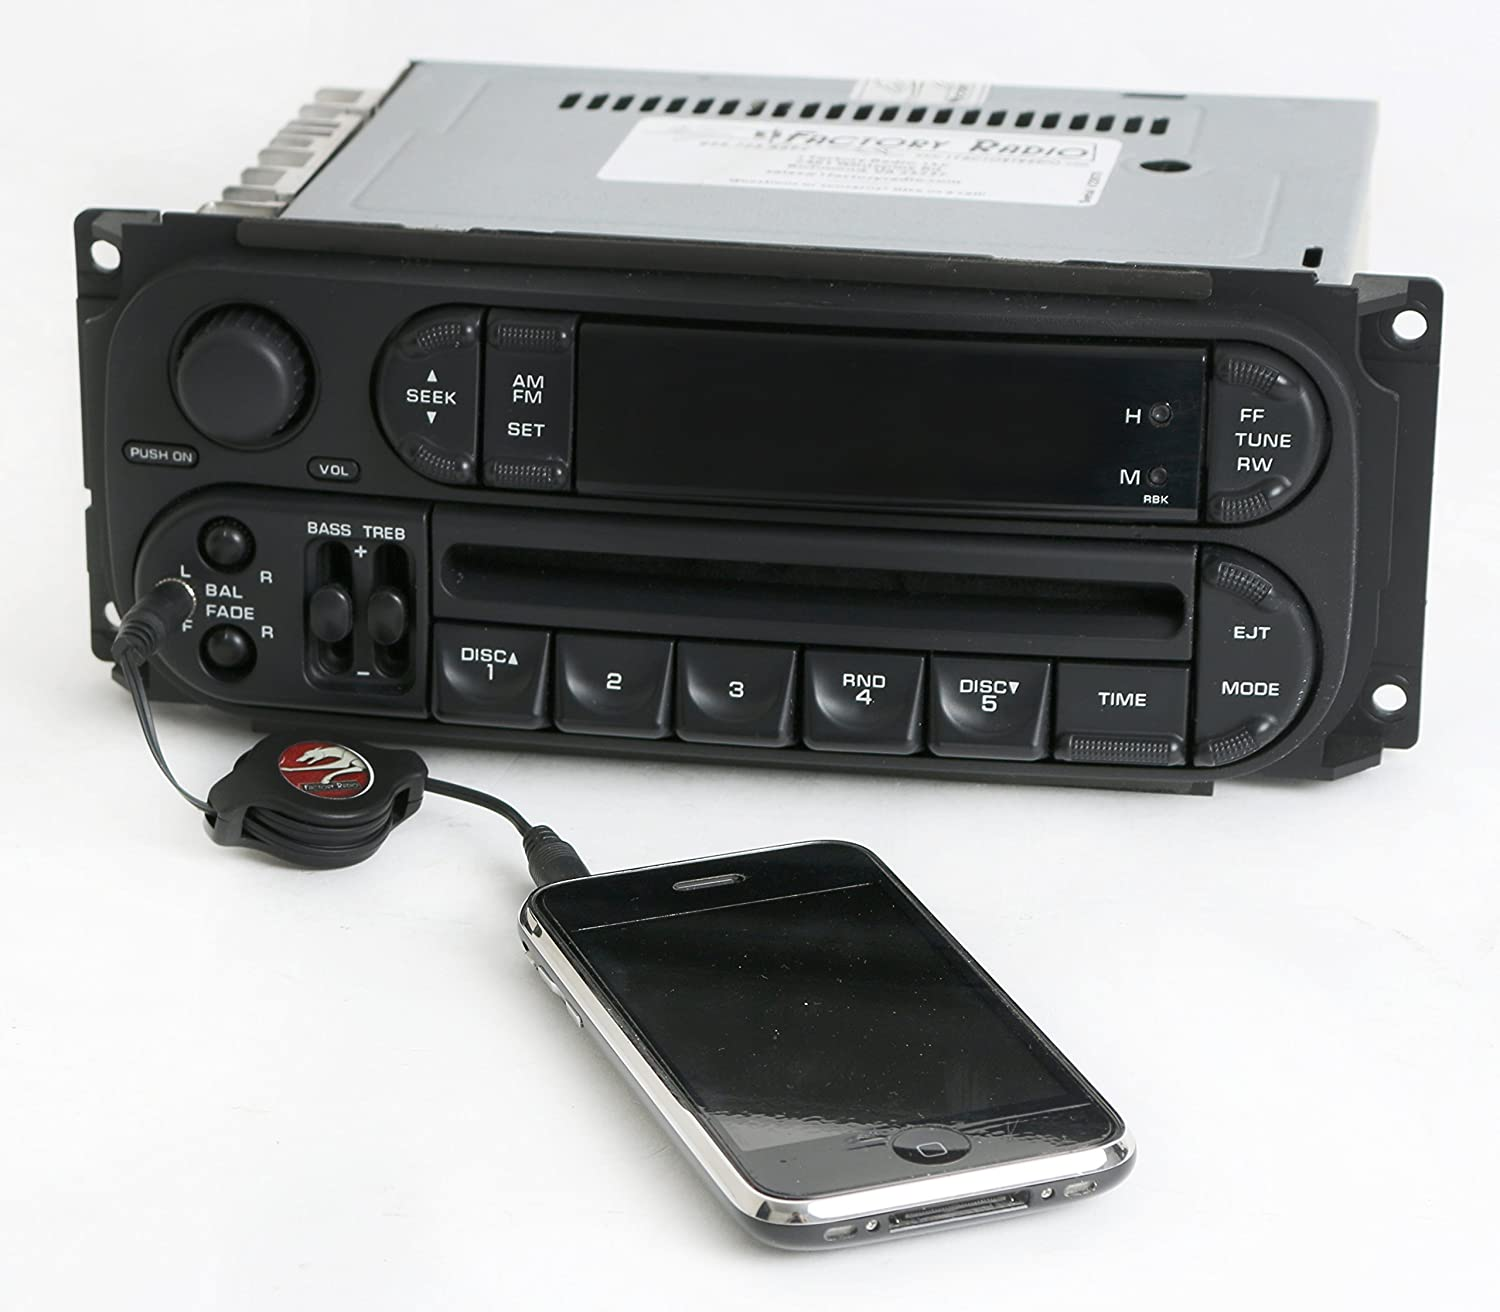 Dodge Neon 2002 05 Radio Amfm Cd Player Upgraded W Aux Car Stereo Wiring Harness Input Rbk Slider Ver Electronics